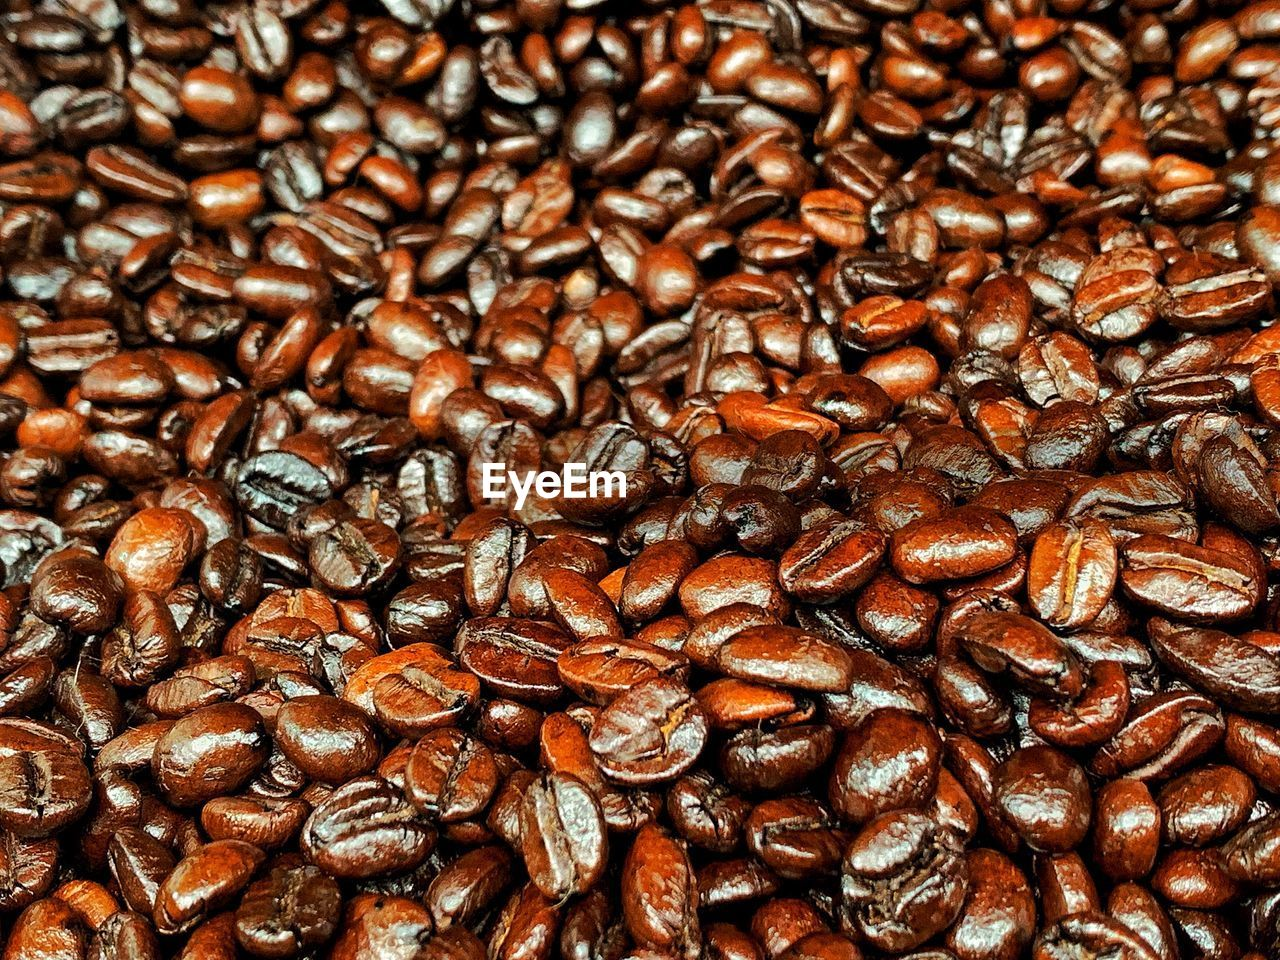 coffee, coffee - drink, roasted coffee bean, food and drink, full frame, backgrounds, brown, food, large group of objects, freshness, abundance, indoors, no people, coffee bean, close-up, caffeine, still life, drink, coffee crop, roasted